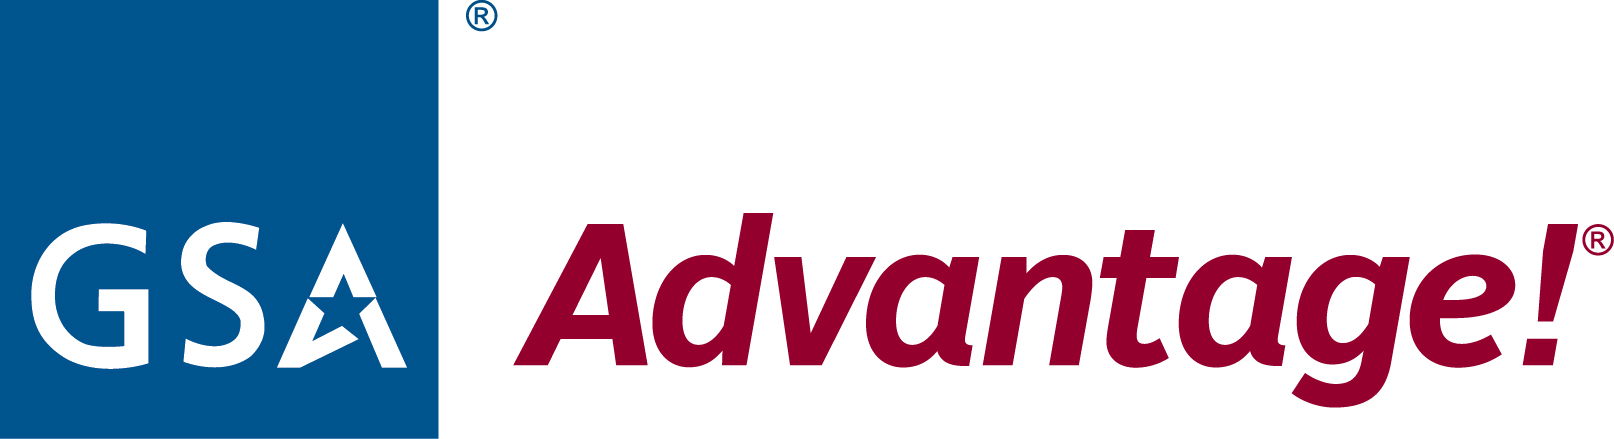 GSA Advantage full Color generic